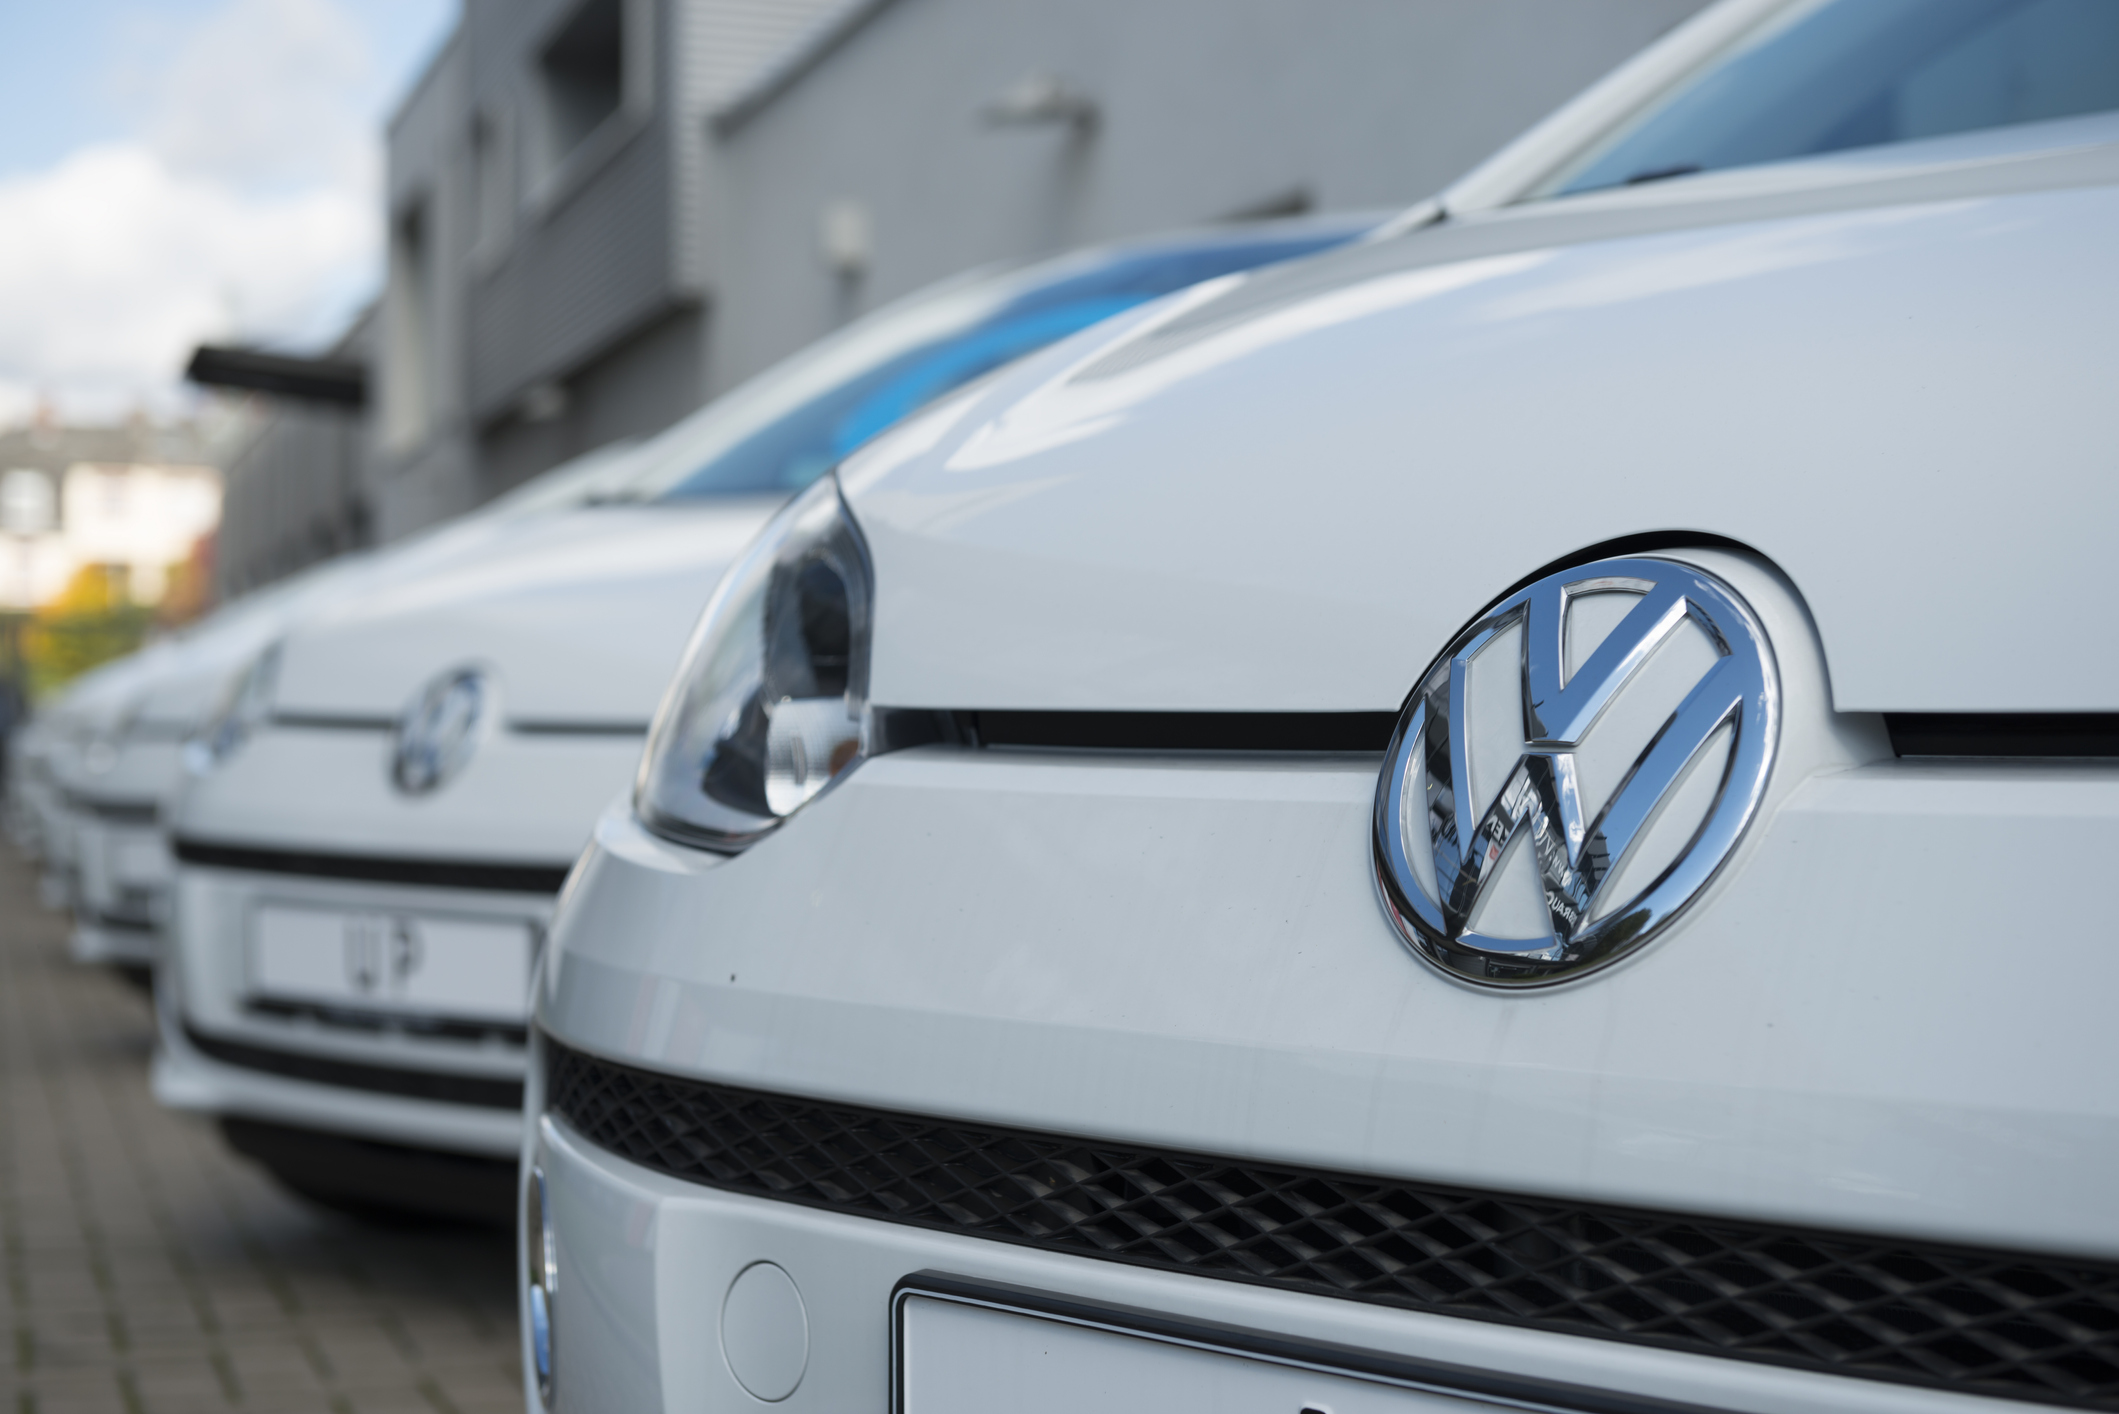 Volkswagen, close your factory in Xinjiang and protect Uyghur human rights